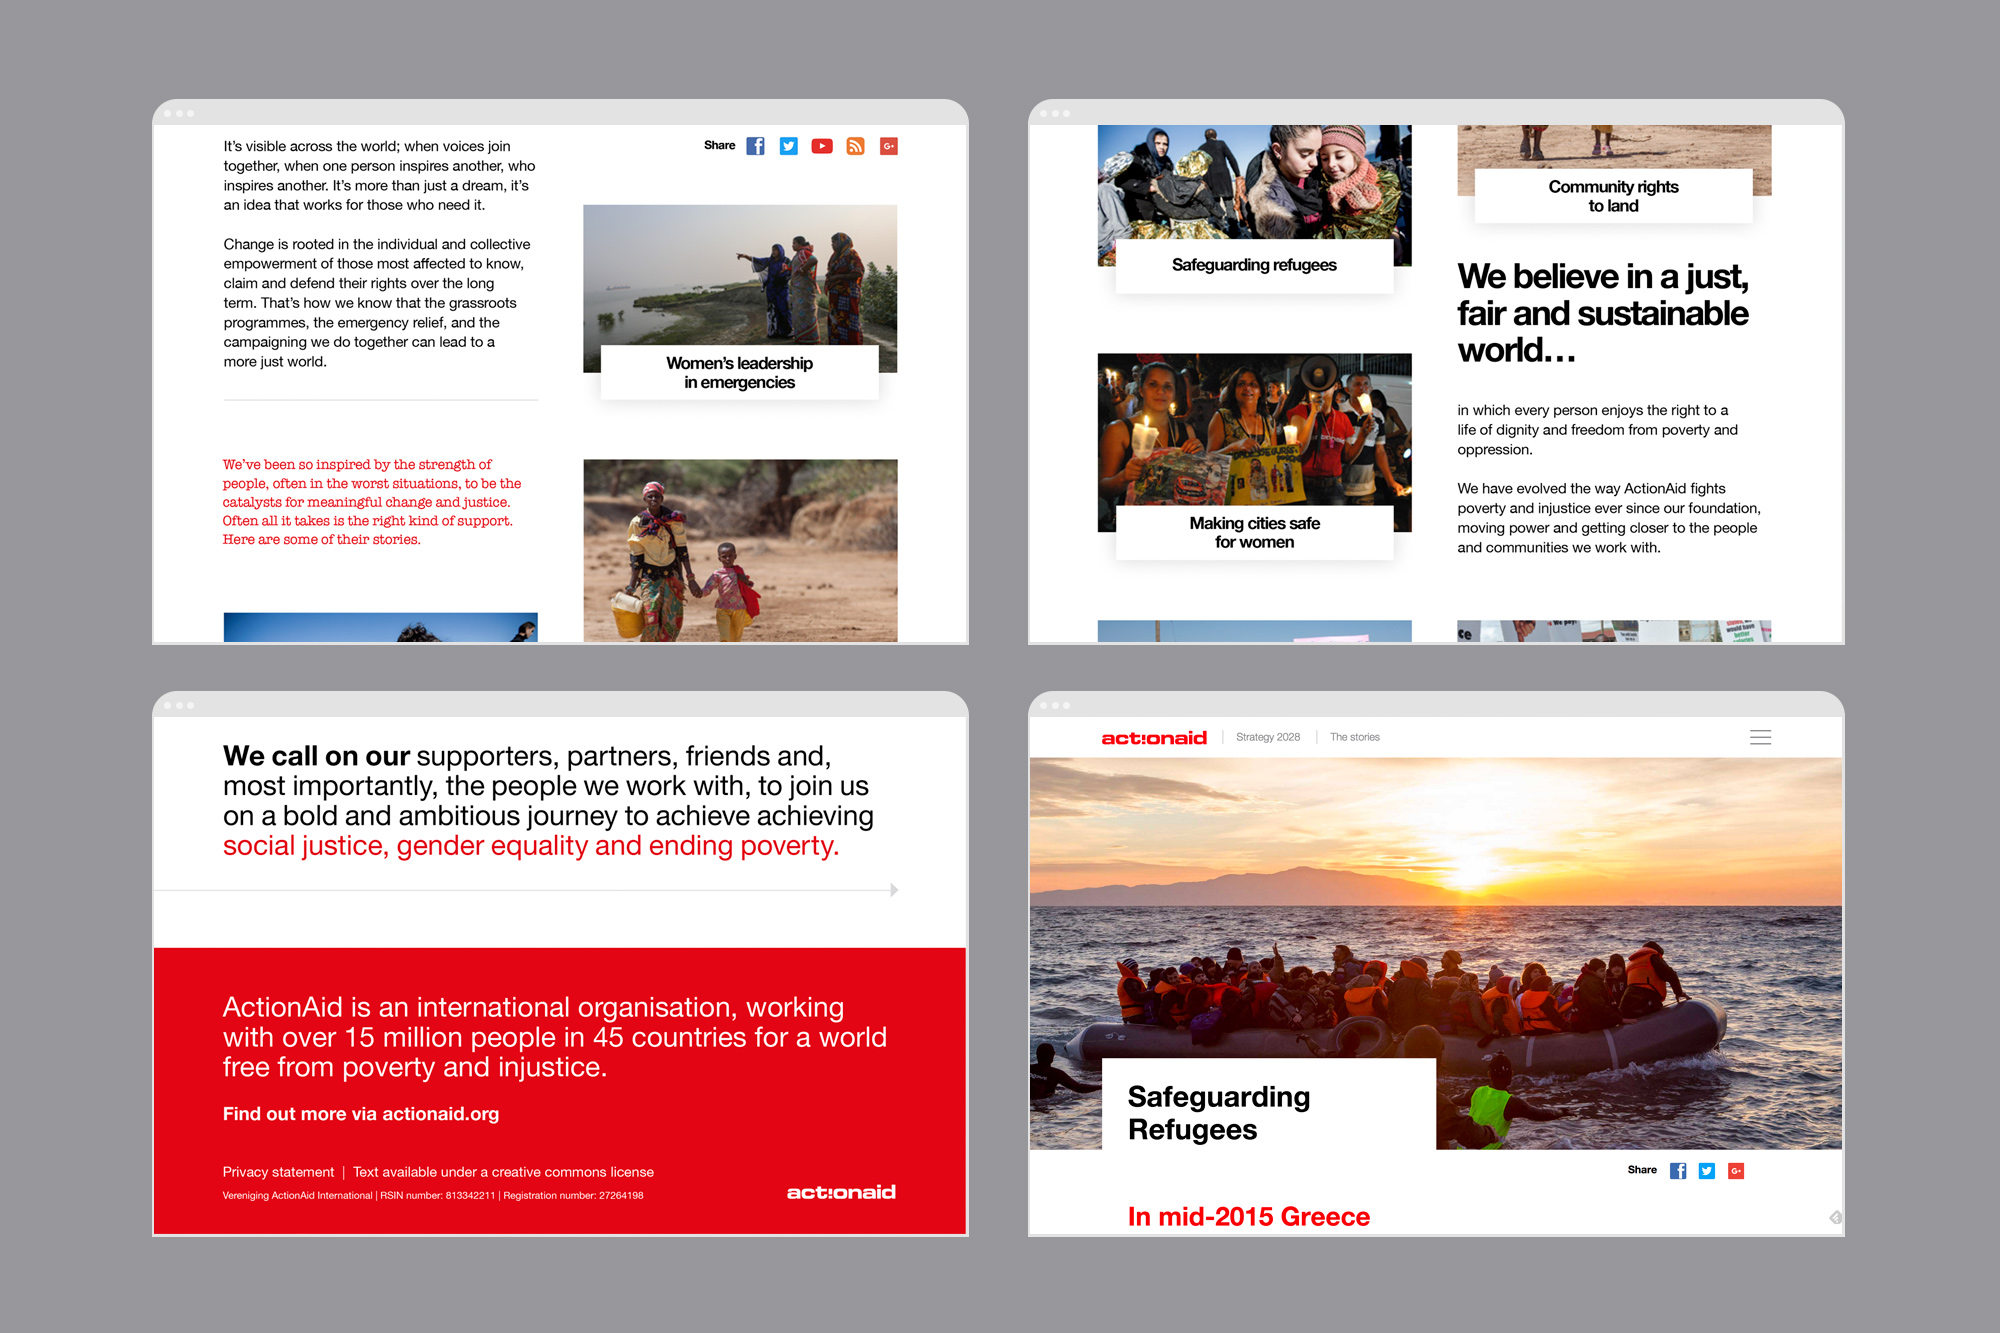 nick-purser-design-actionaid-strategy-2028-03